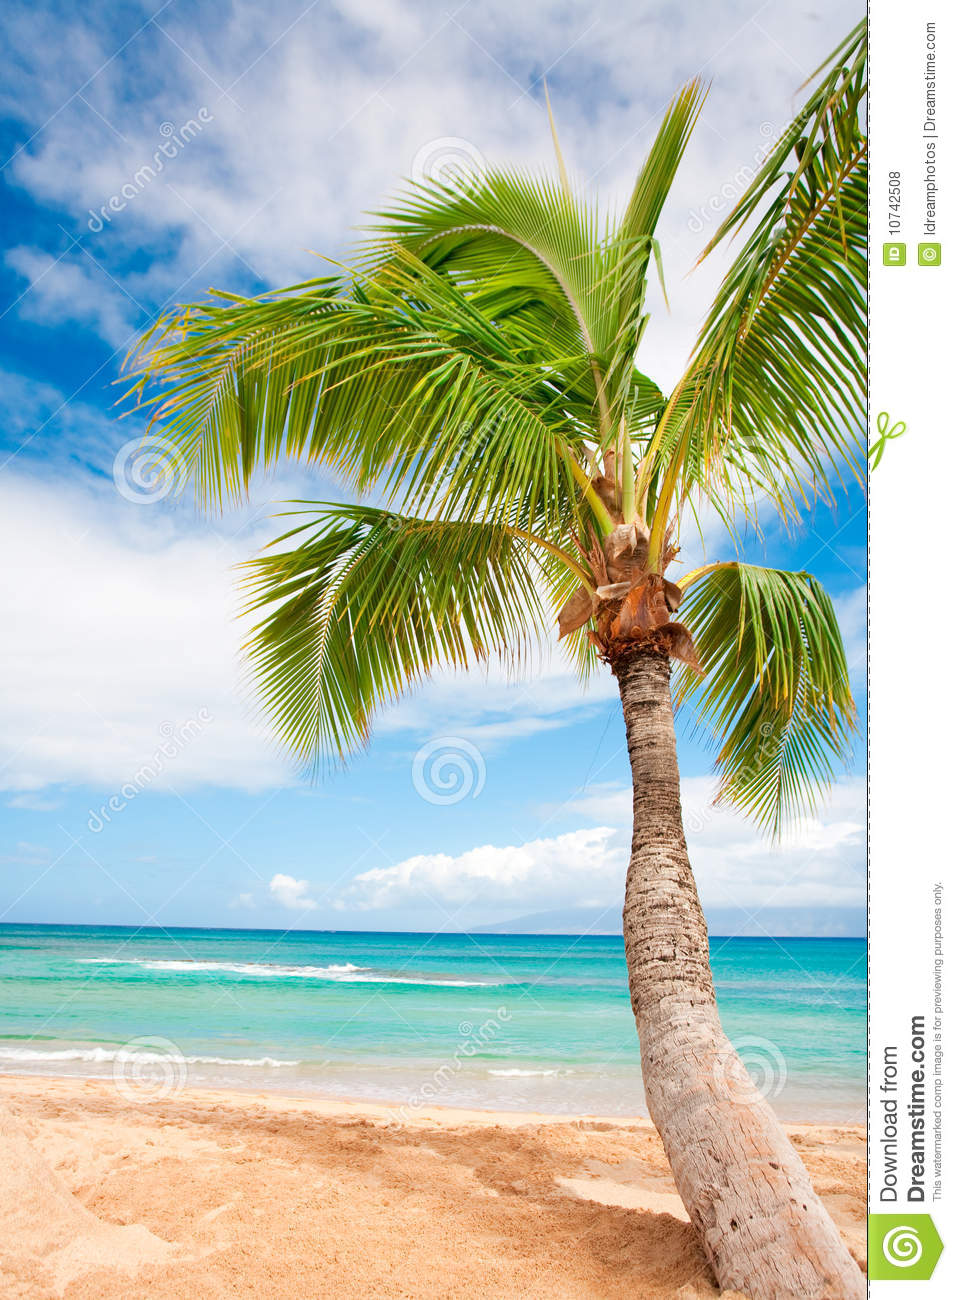 Palm tree beach background stock photo image of beautiful 10742508 palm tree beach background voltagebd Image collections